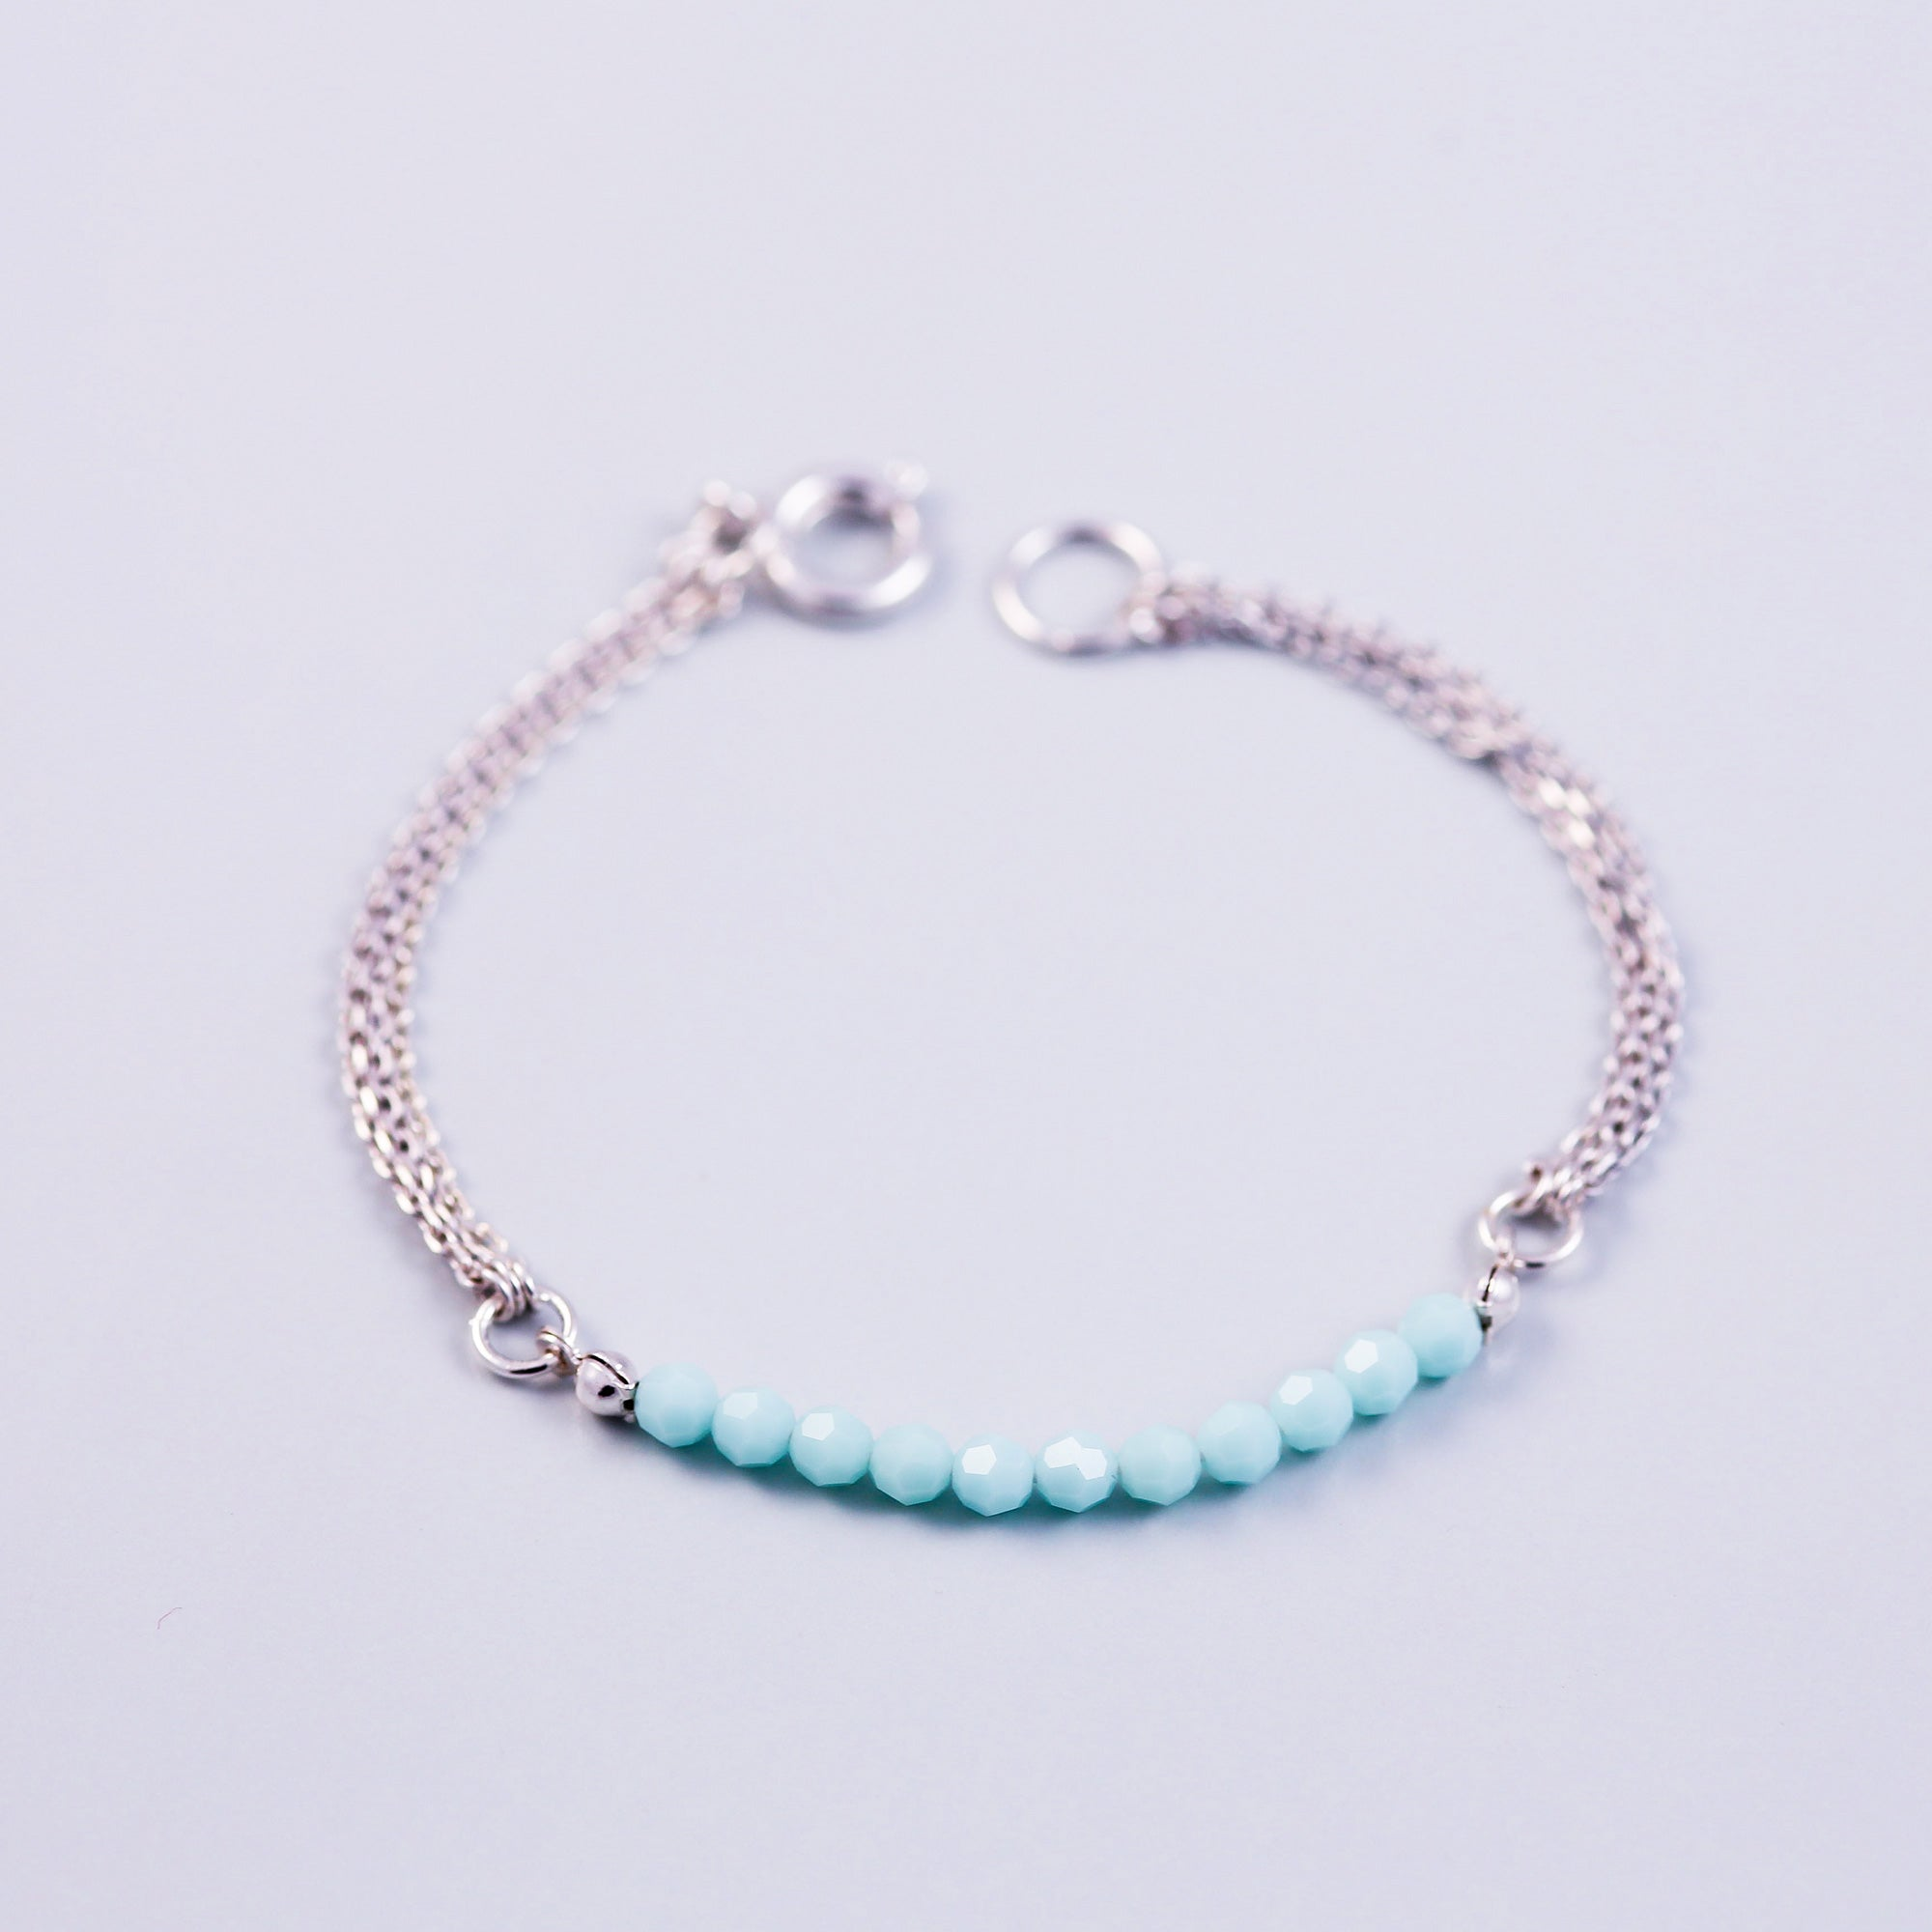 Beaded Bracelet | Cute Friendship Bracelets | Friendship Jewellery | Silver & Mint Alabaster